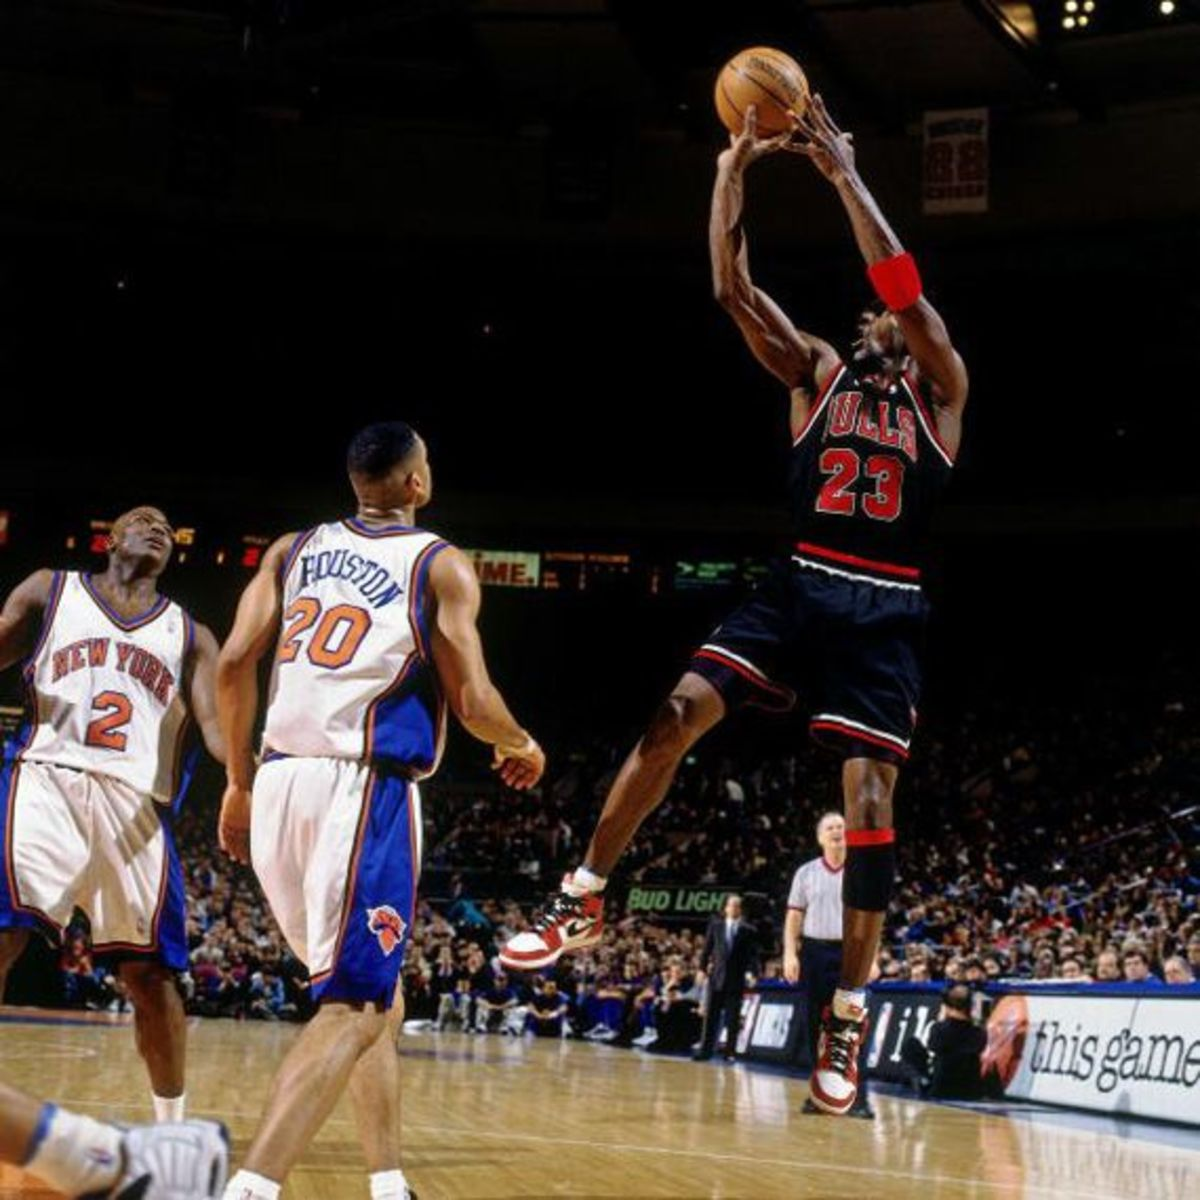 """Michael Jordan Once Wore Small Size Shoes Against The Knicks: """"By Halftime My Feet Are Bleeding, But I'm Having A Good Game, I Don't Want To Take Them Off."""""""